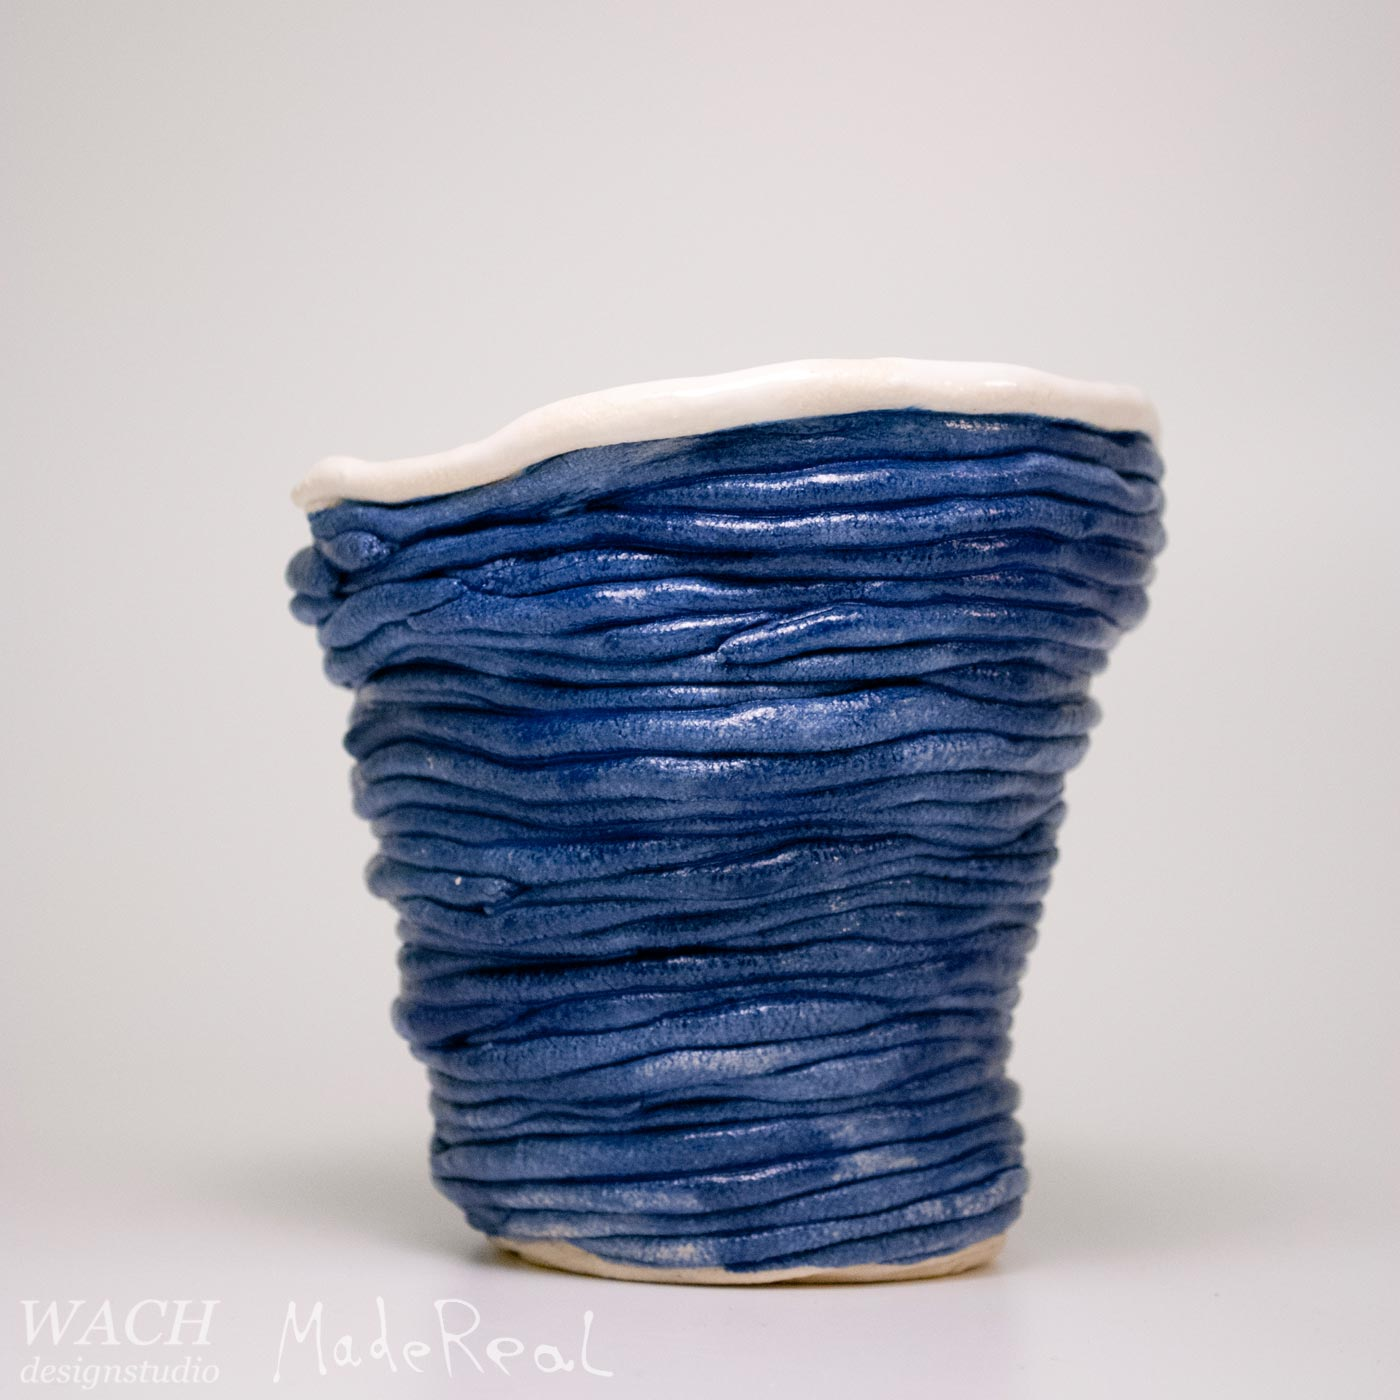 Prototype of a MadeReal Coil Cup with Blue Glaze